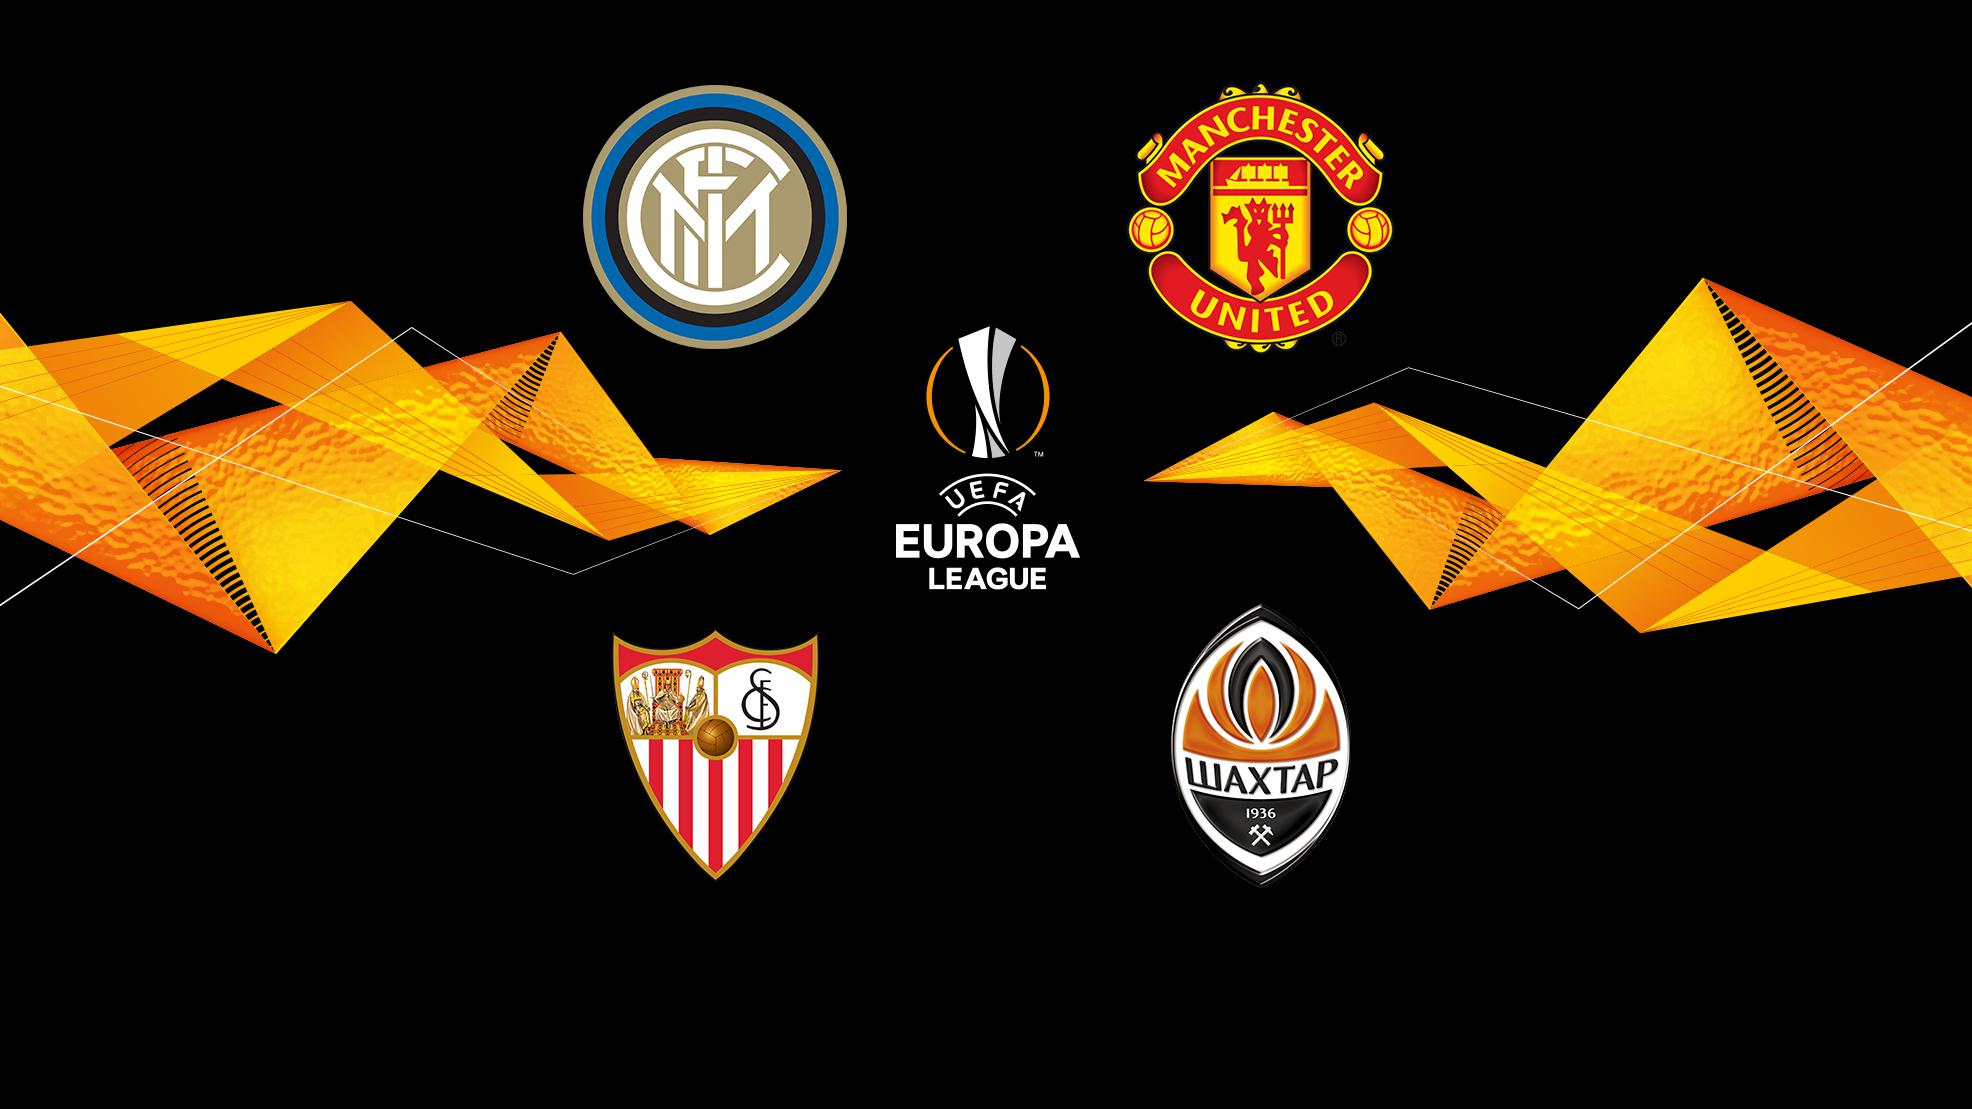 Europa League Semi Final Line Up Uefa Europa League Uefa Com